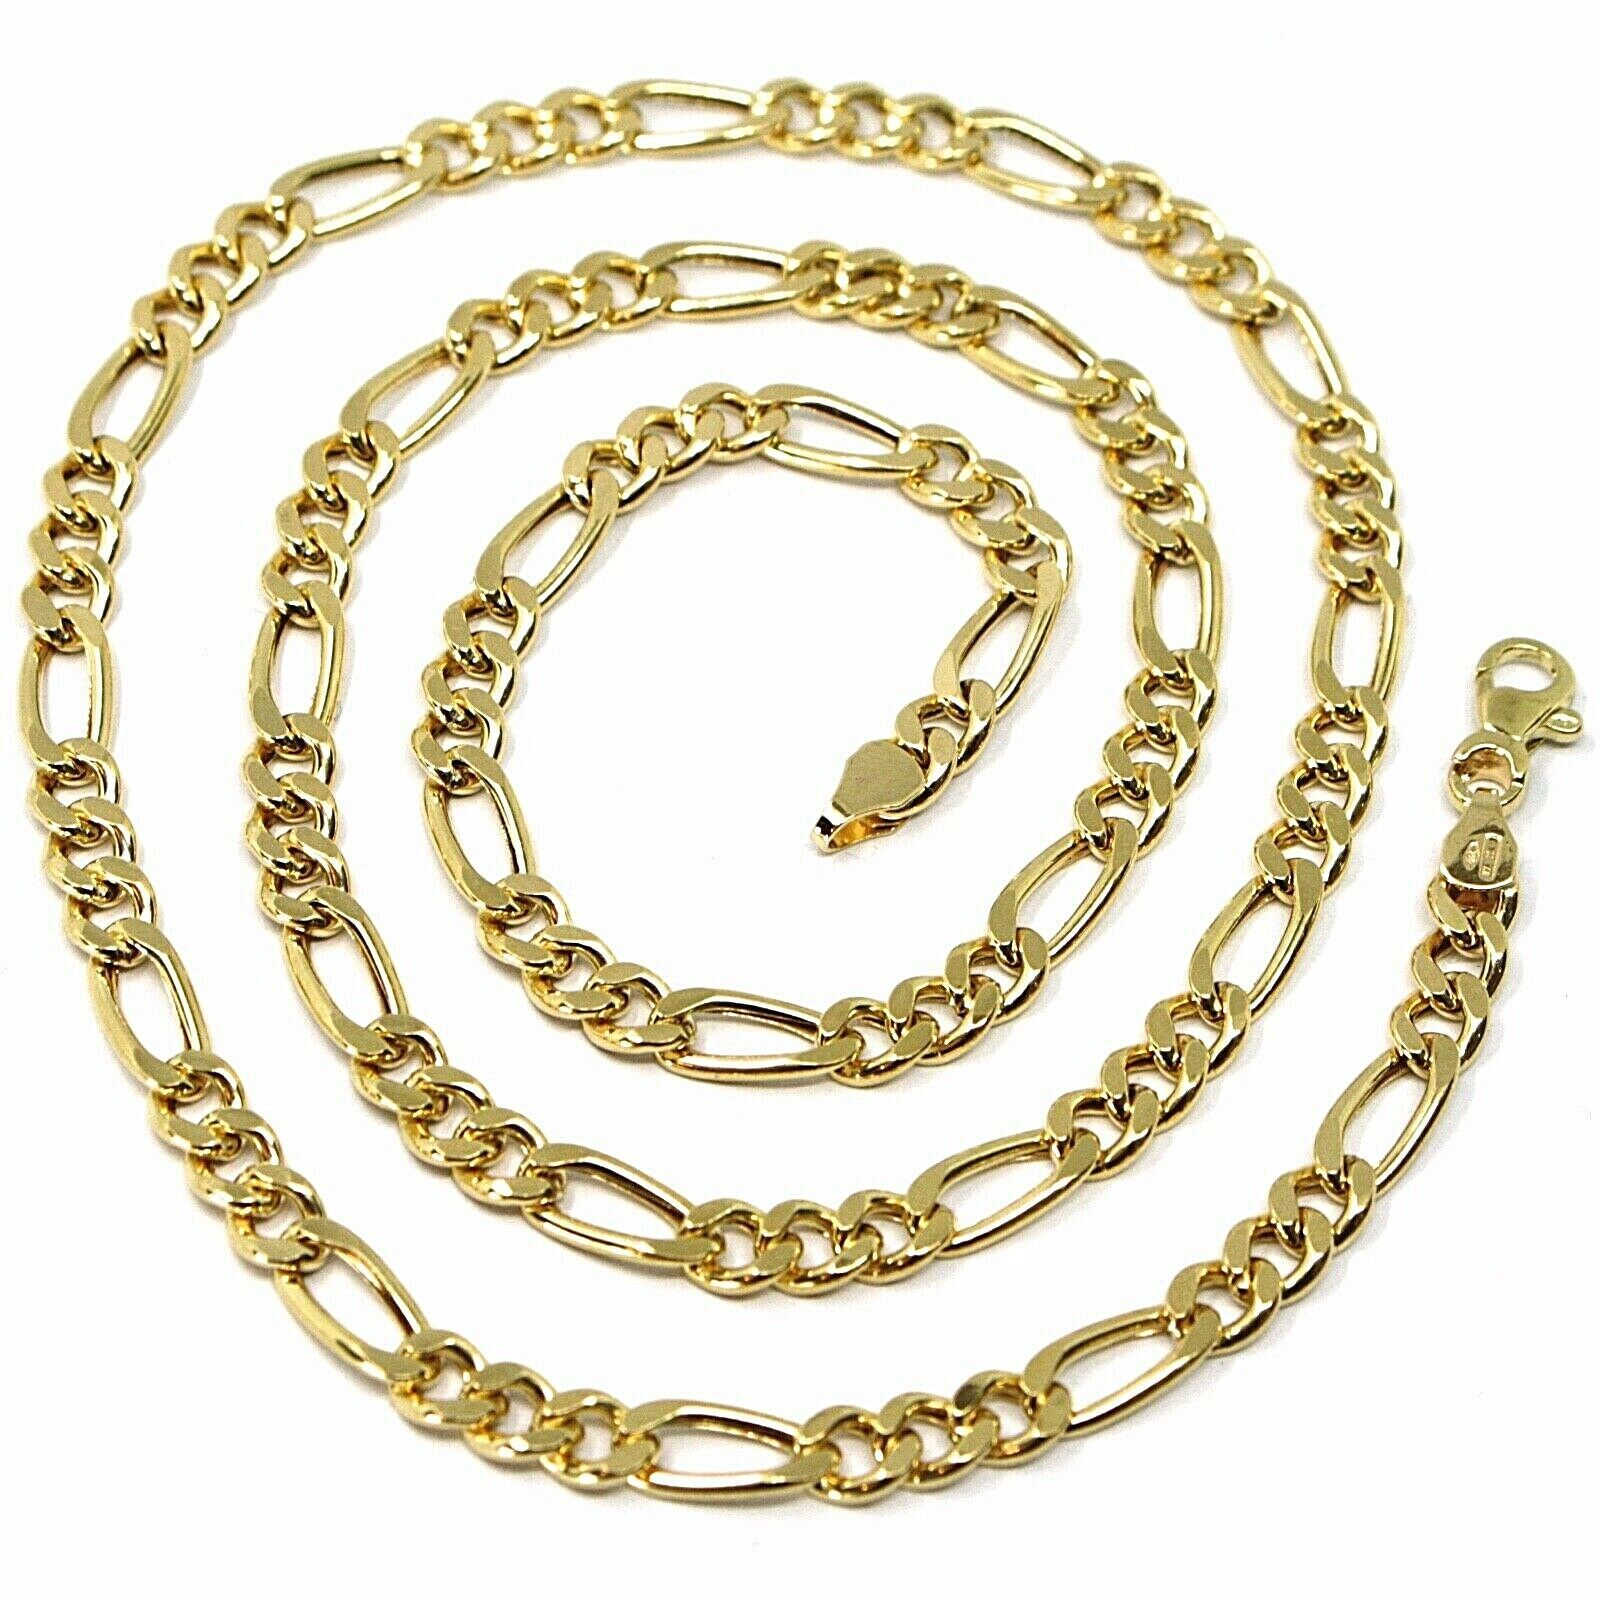 18K YELLOW GOLD CHAIN, BIG 5 MM FIGARO GOURMETTE ALTERNATE 3+1, 24 INCHES